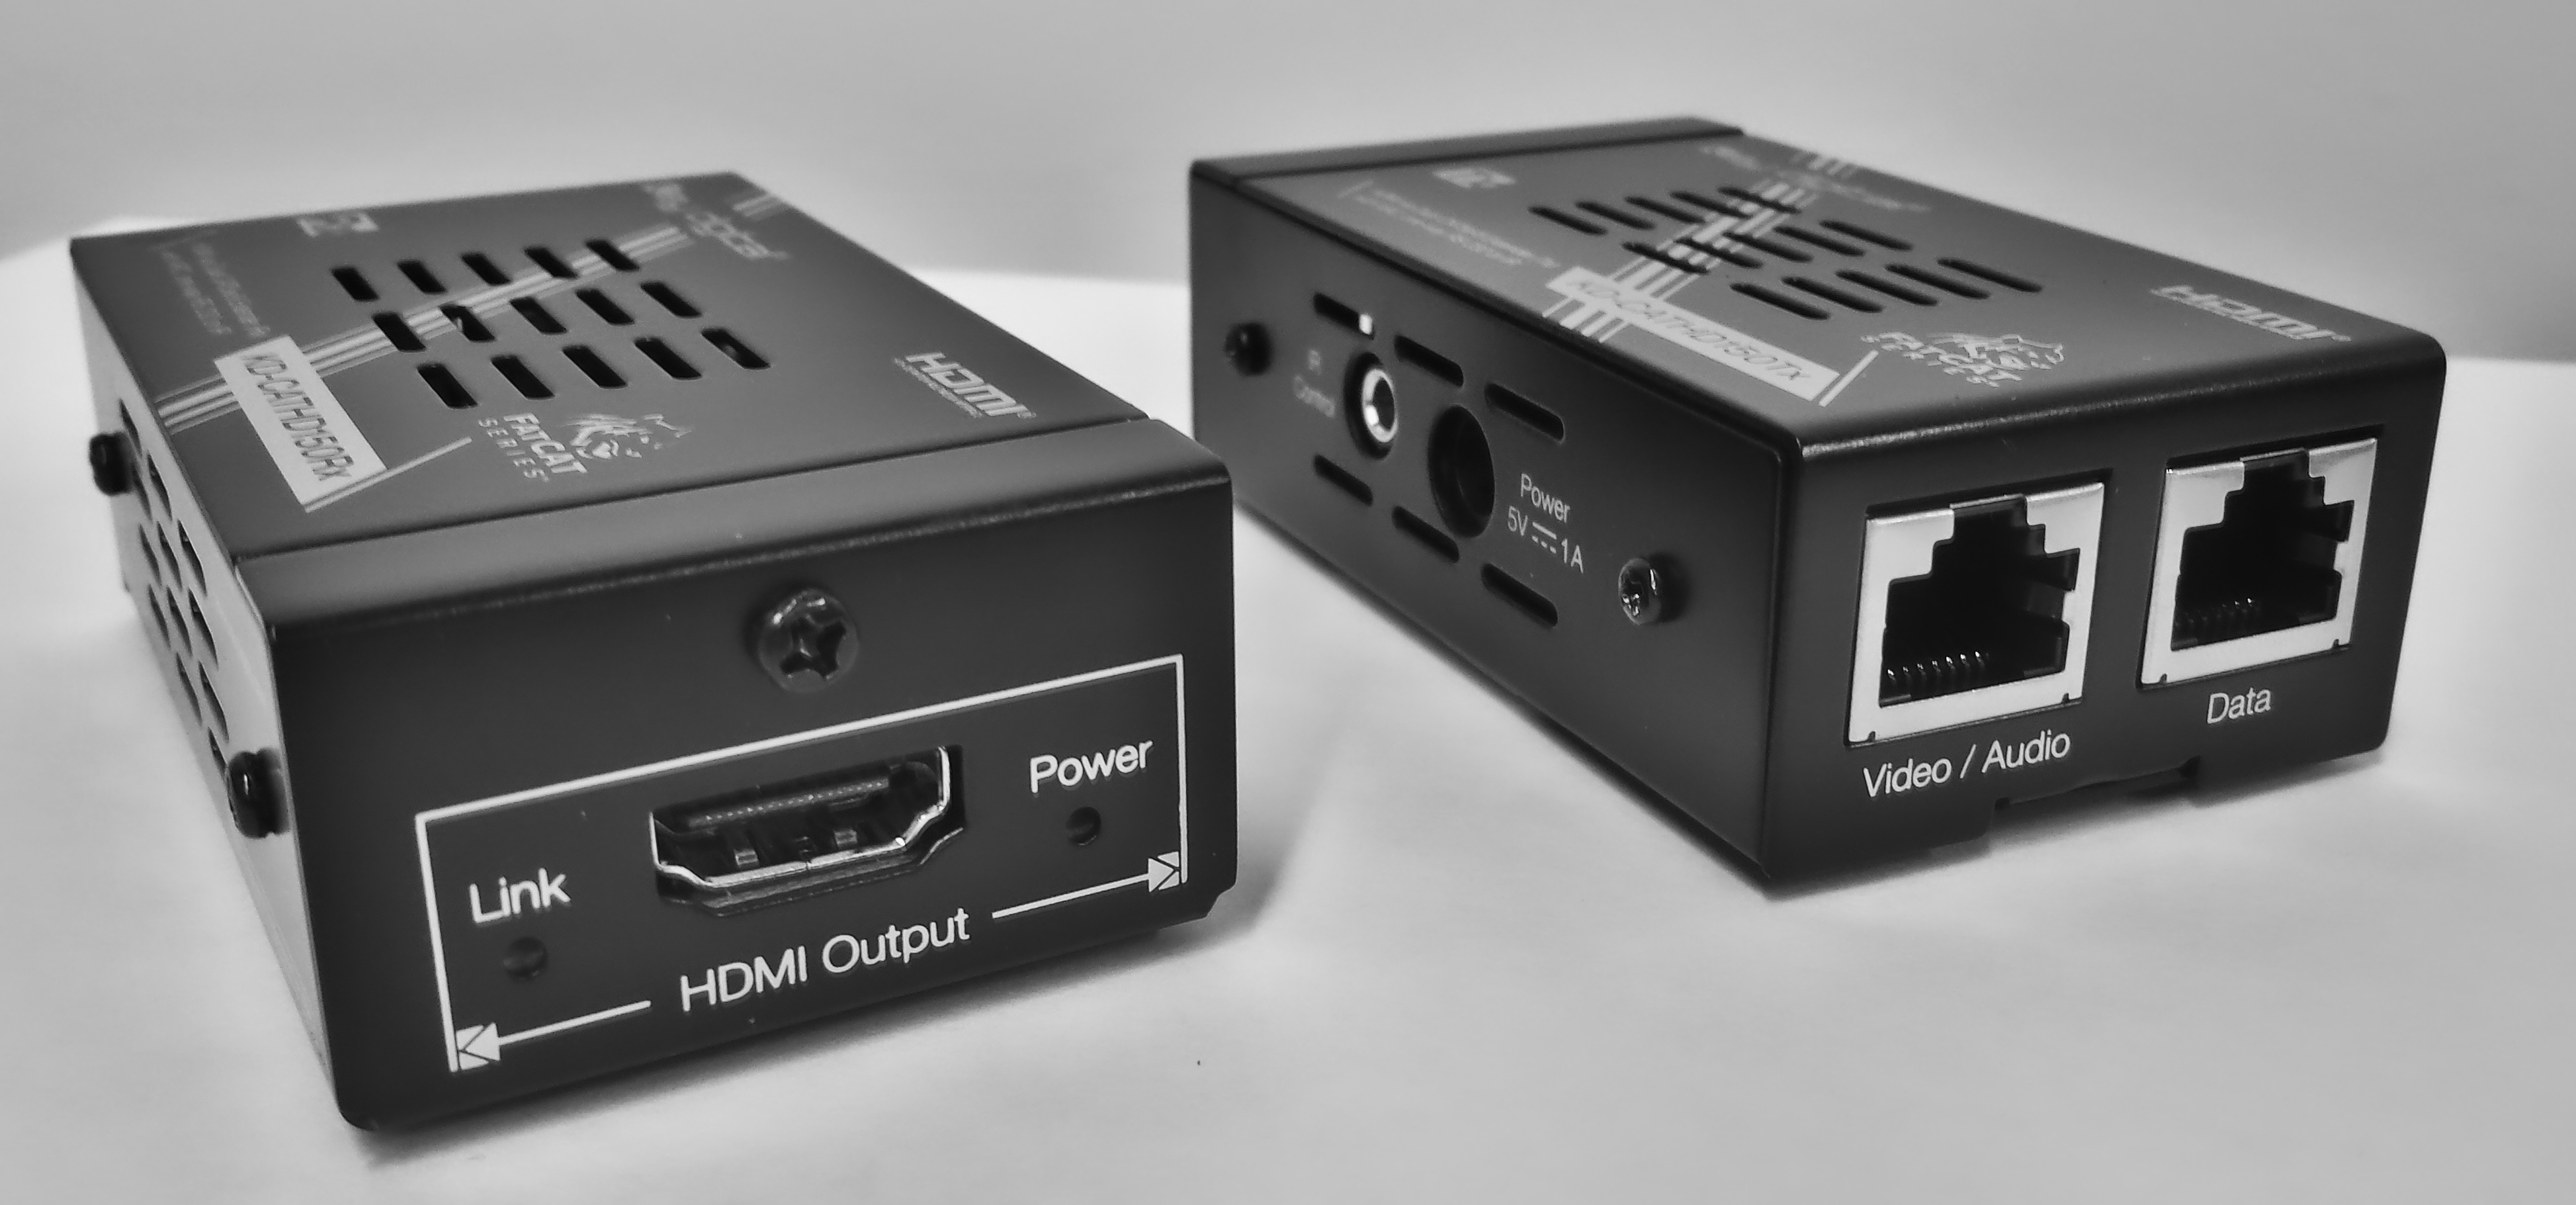 Hdmi Extenders Dont Pre Wire With Home Theatre Wiring Solutions The Real Reason Why You Should Never